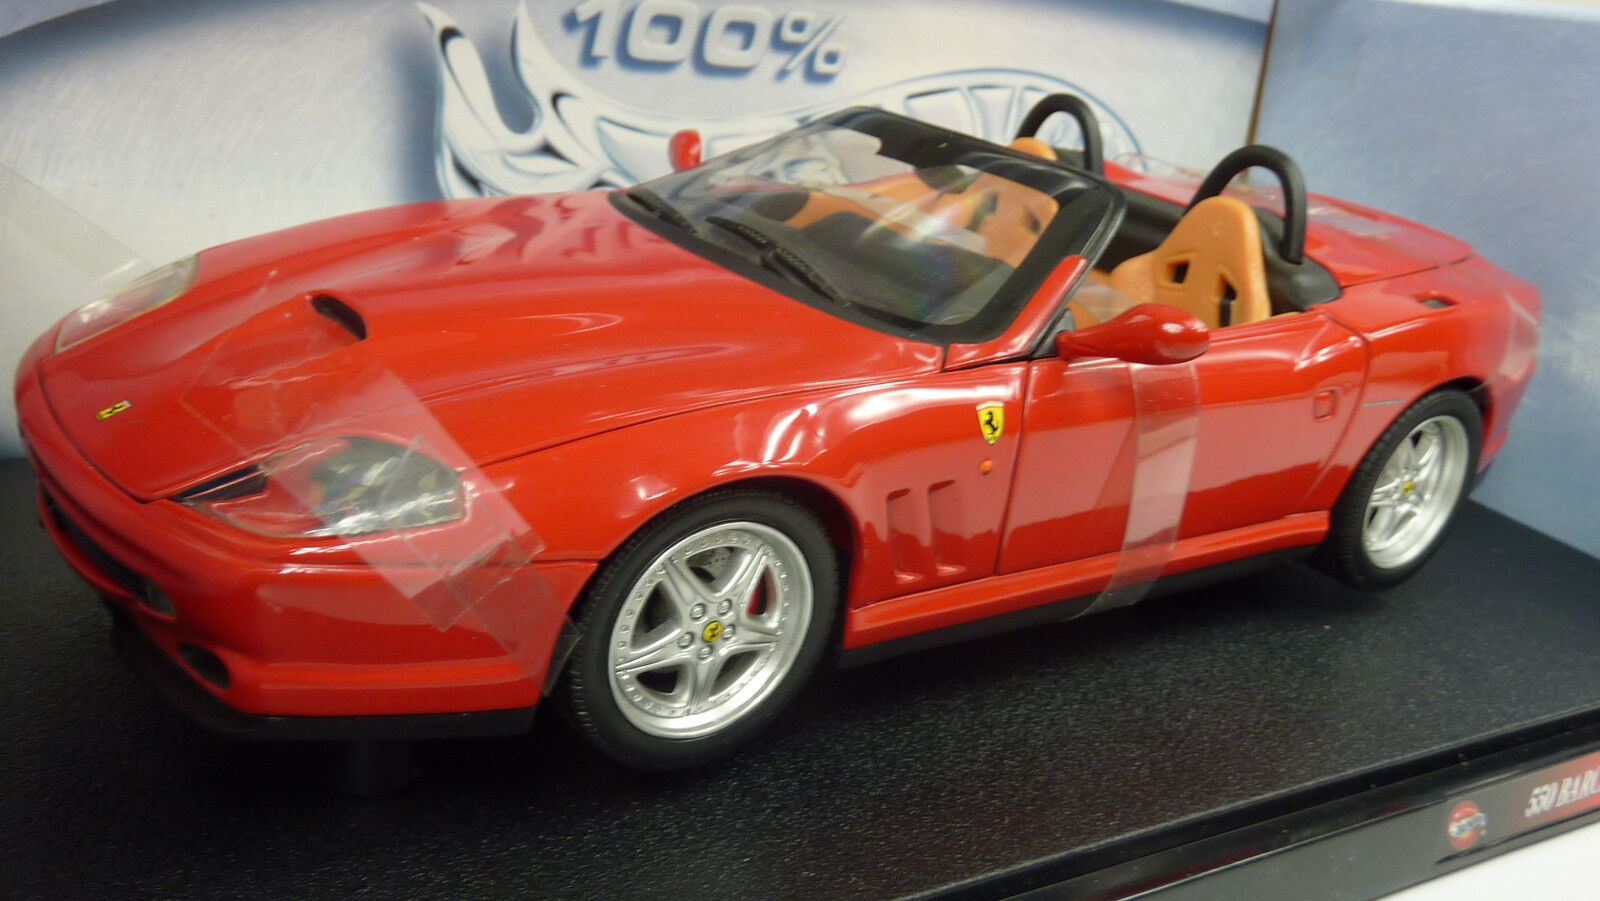 HOT WHEELS 1 18 n. 29441 FERRARI 550 BARCHETTA PININFARINA Cabrio in scatola originale (a673)